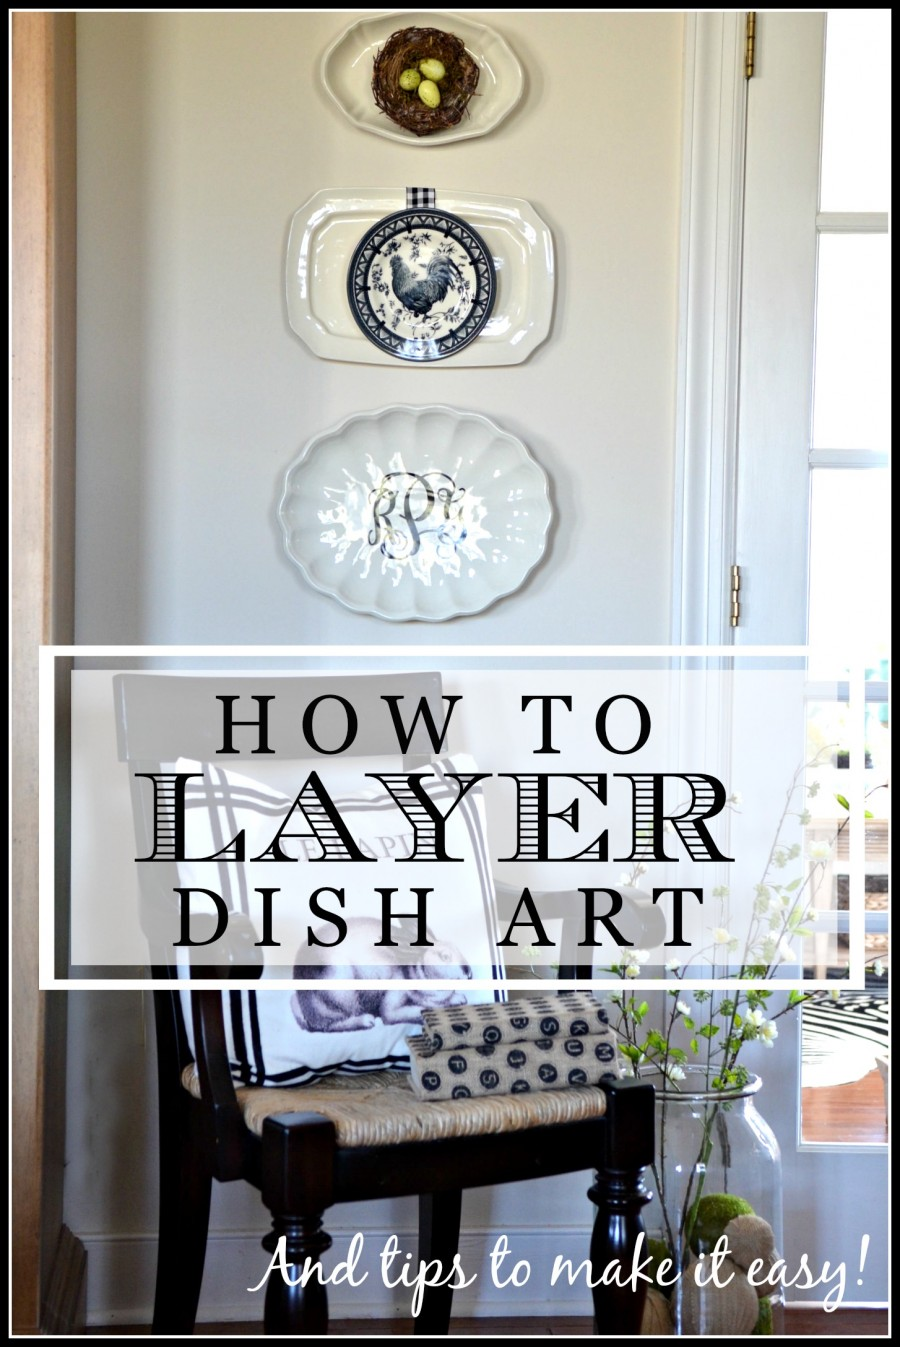 HOW TO LAYER DISH ART